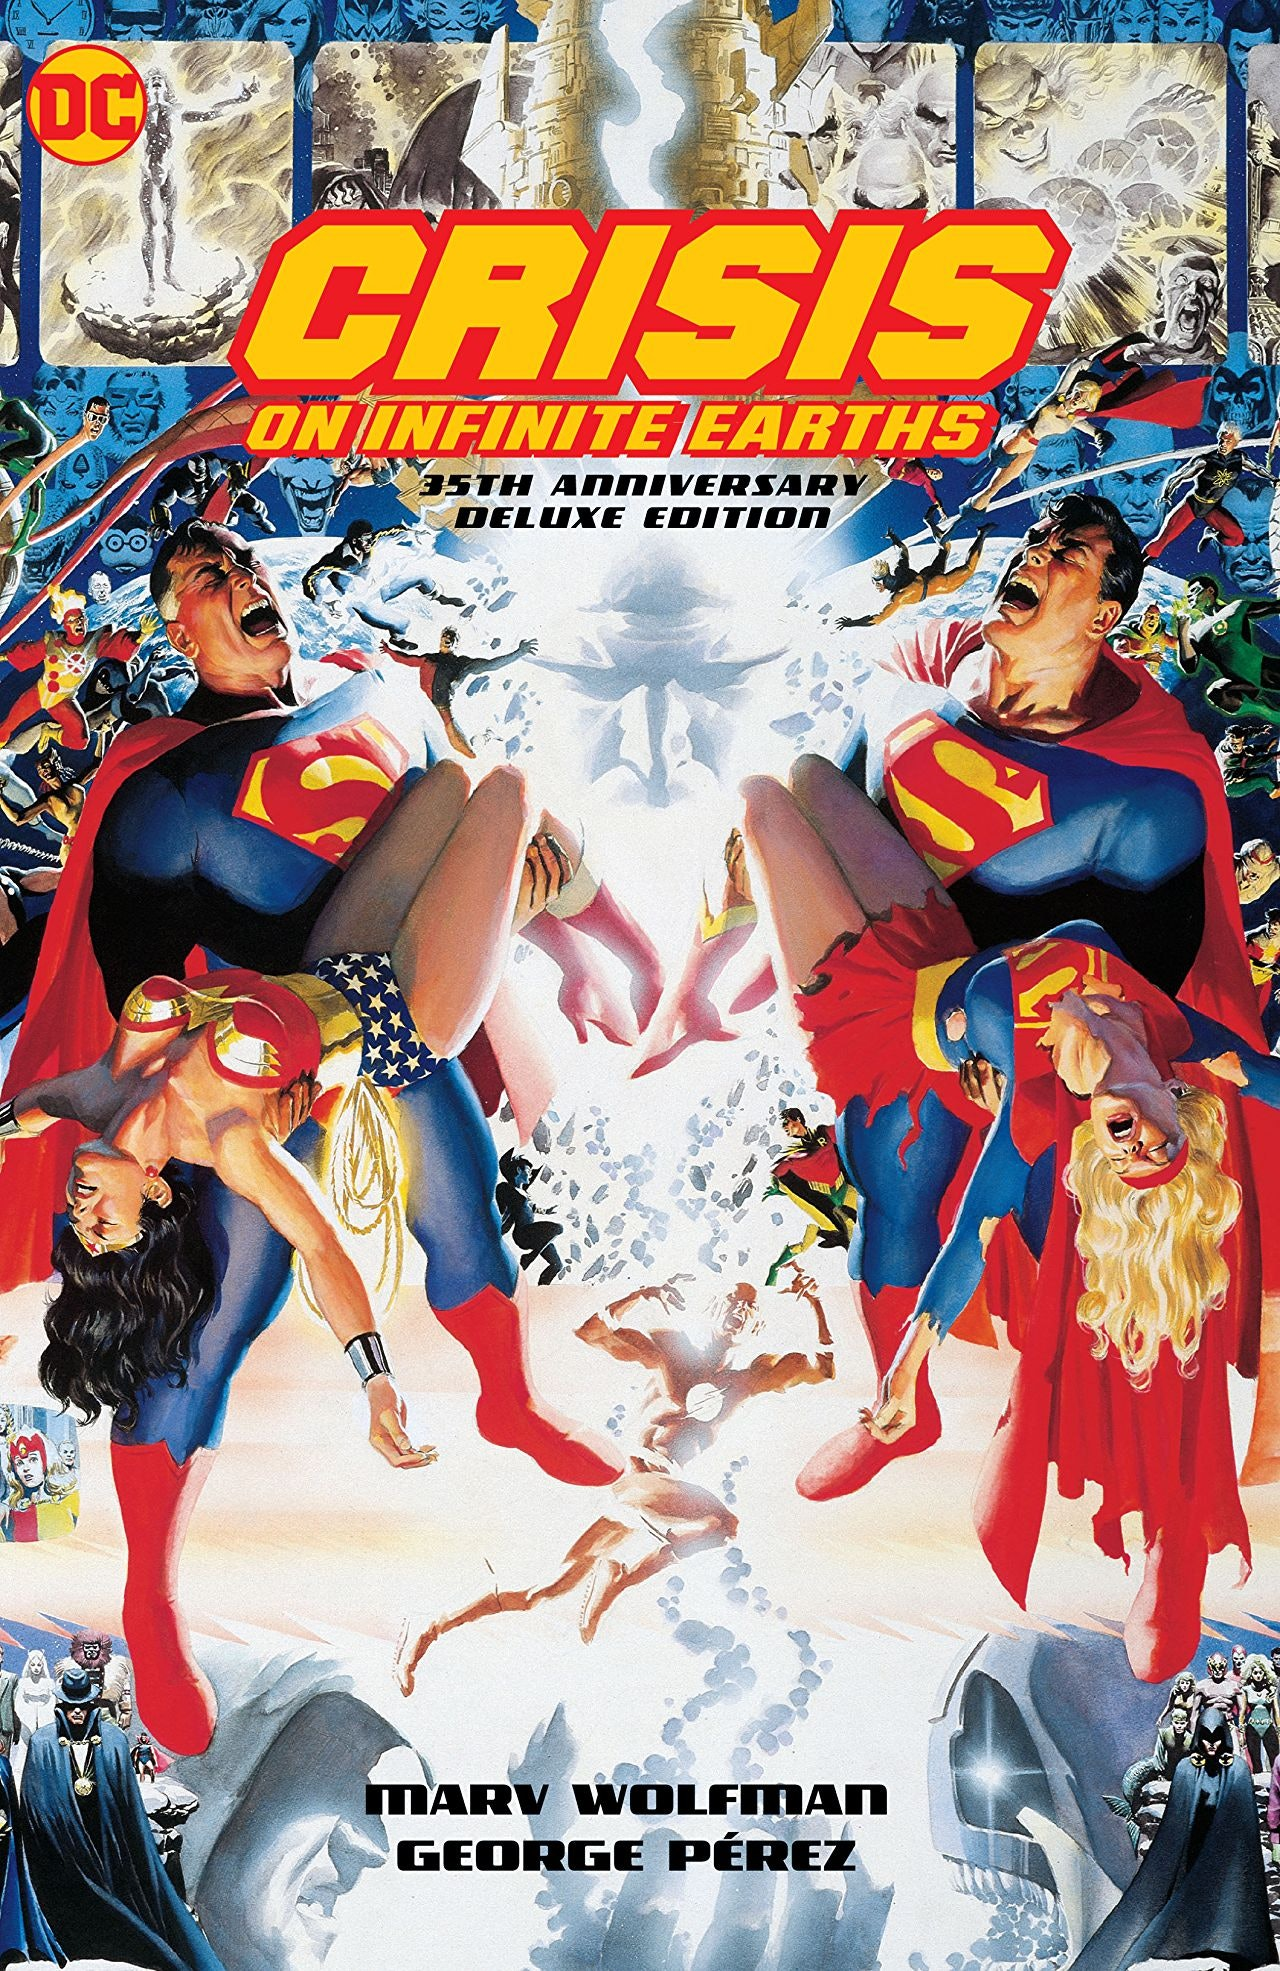 https://imgix.bustle.com/inverse/ff/3d/c0/27/e97b/4f68/8d9b/56aca7459fc1/cover-of-the-35th-anniversary-release-of-crisis-on-infinite-earths-on-trade-paperback.jpeg